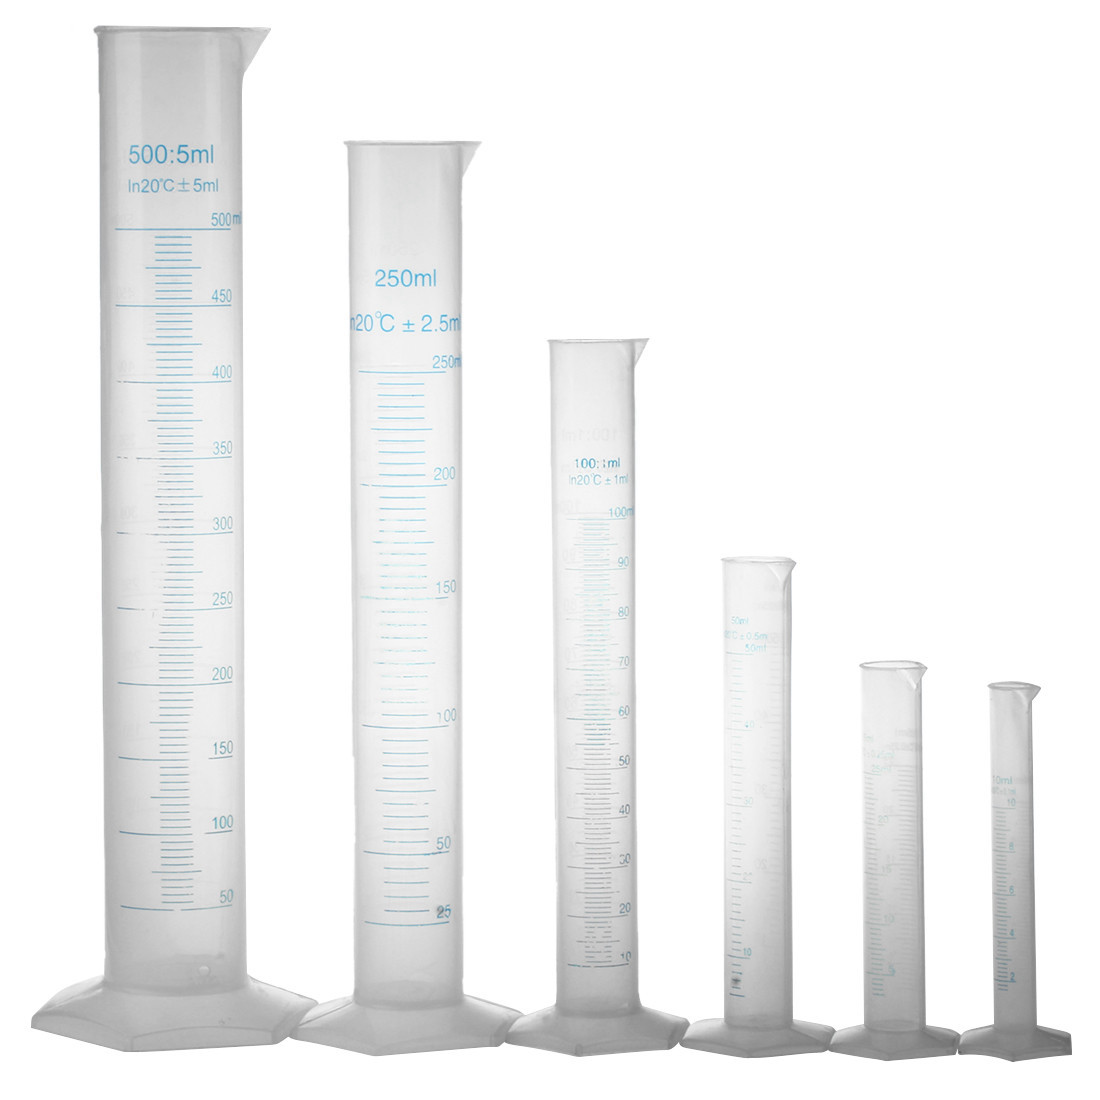 10 25 50 100 250 500ml Graduated Cylinder To Measure Students Laboratory DIY 6 Pcs